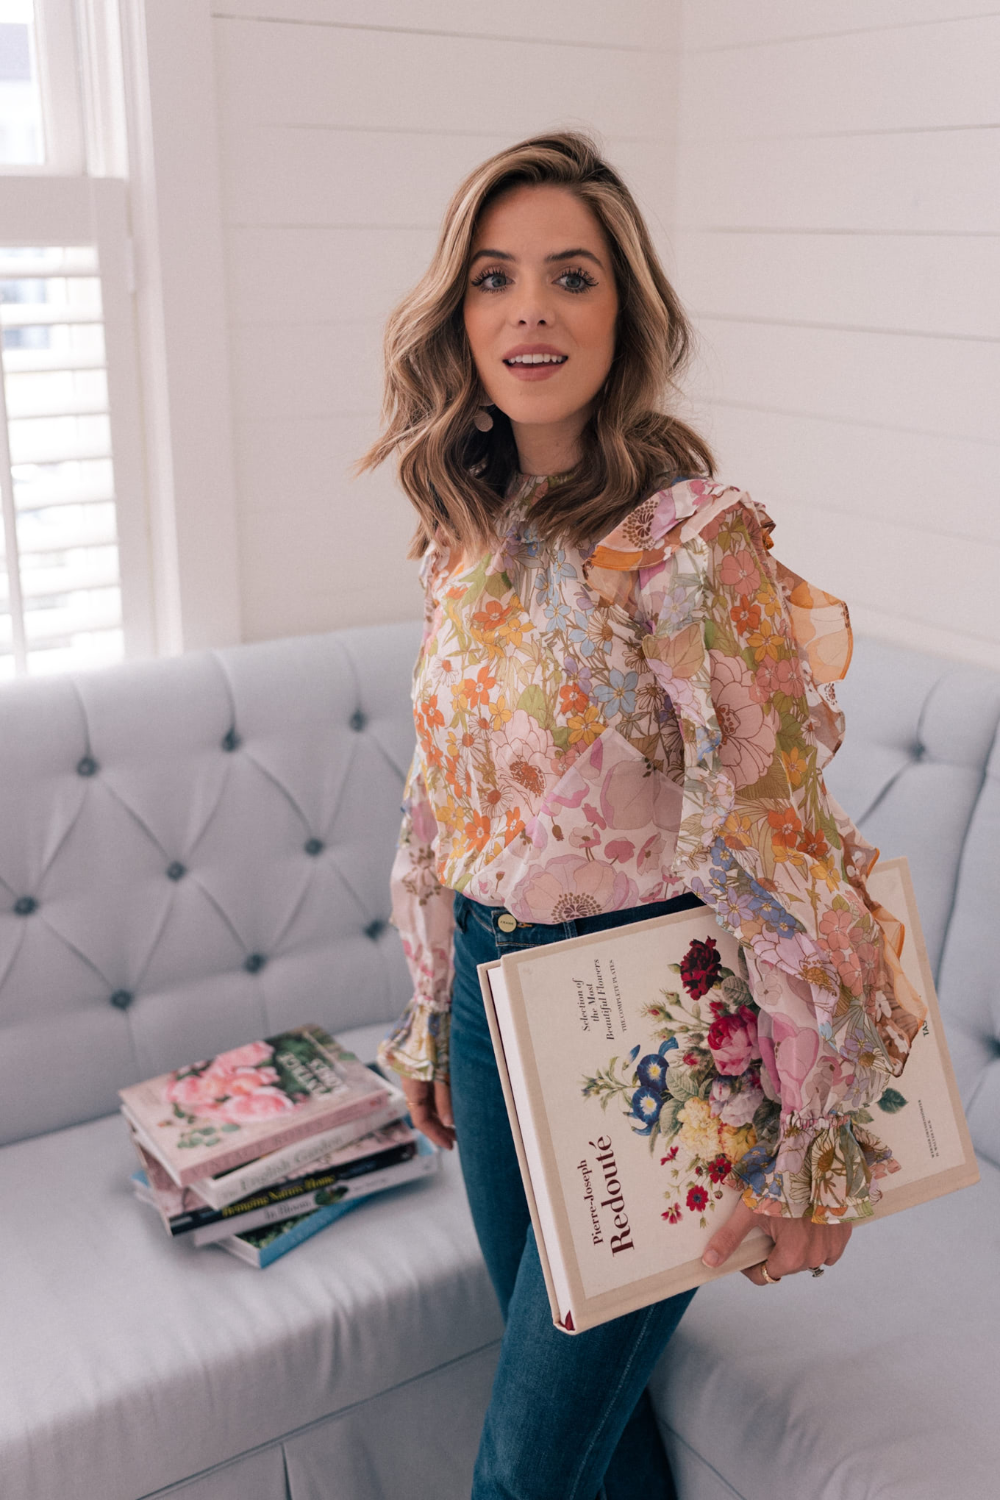 Check out today's blog post for the winter floral tops and dresses I've been admiring lately, all of which are available at Nordstrom #sponsored ShopStyle